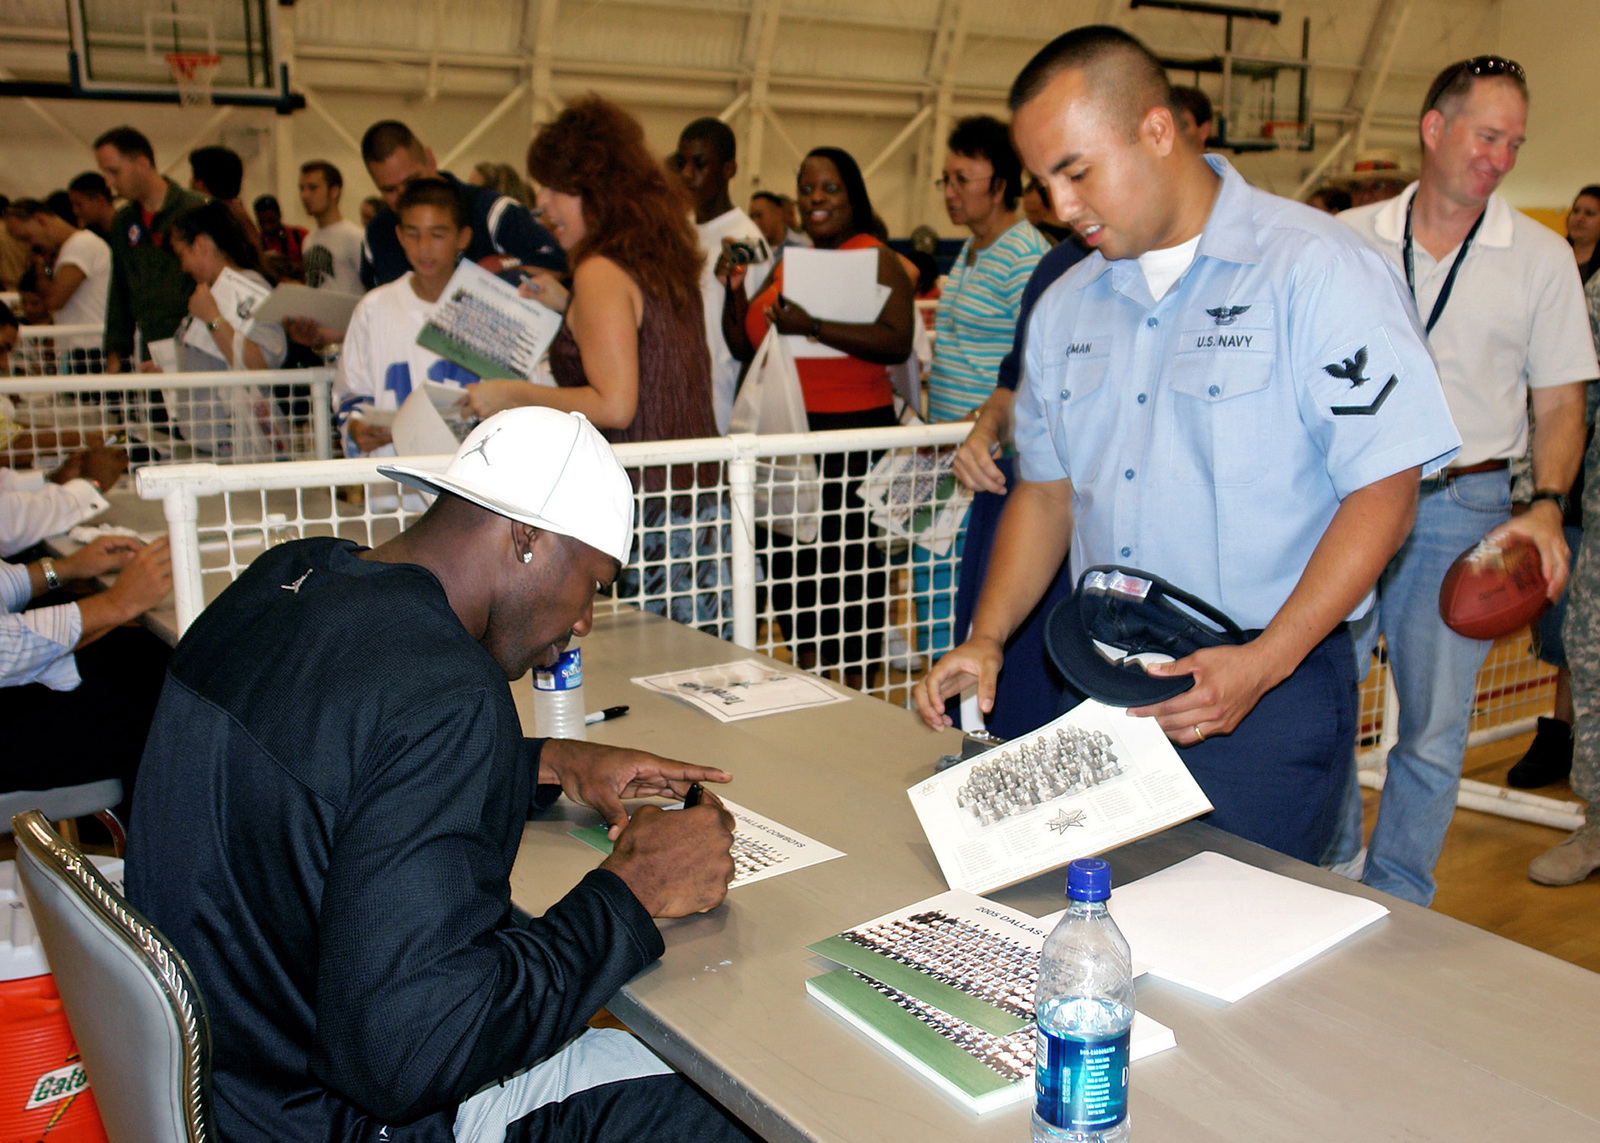 060727-N-9643W-130 (Jul. 27, 2006)Dallas Cowboys wide receiver Terrell Owens, signs an autograph for Personnel SPECIALIST Third Class (PS3) Guillermo Guzman, during the team's visit to Naval Air Station (NAS), Point Mugu, California, (CA).U.S. Navy official photo by Mass Communication SPECIALIST Second Class Kimberly Williams (Released)